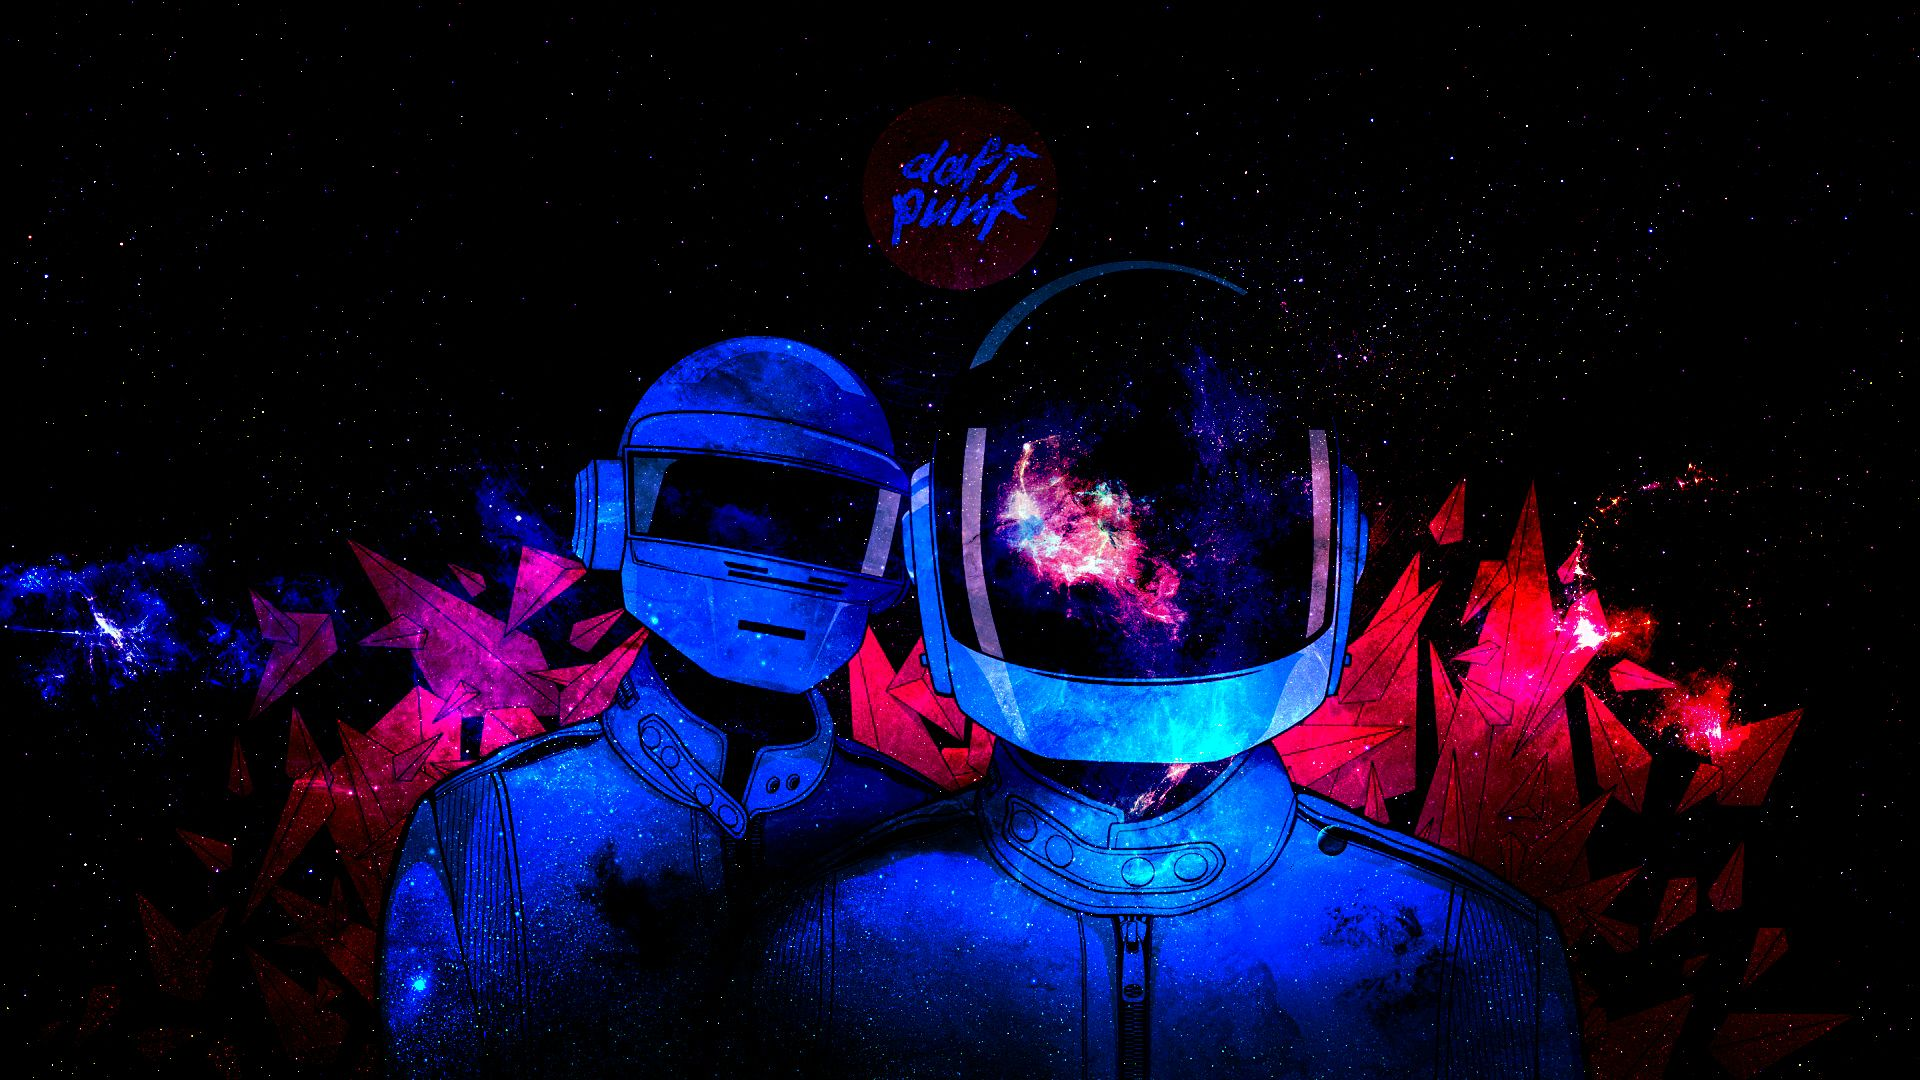 Daft Punk Wallpapers High Quality